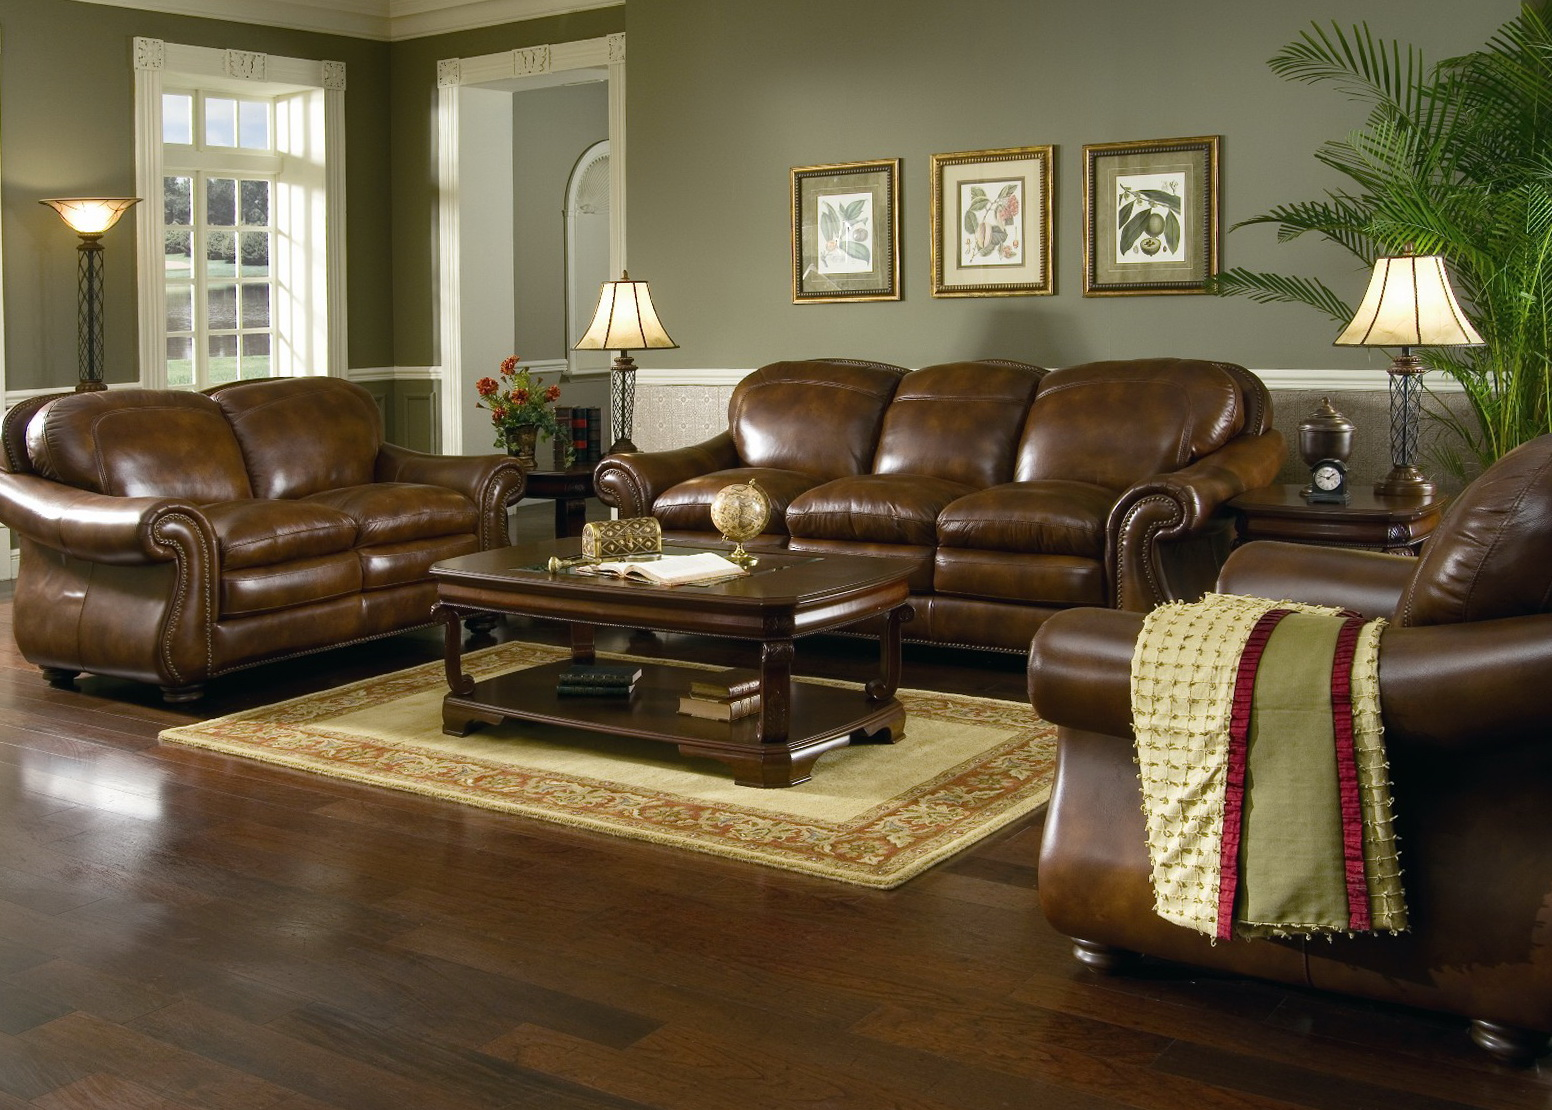 Paint Colors For Living Room With Brown Leather Furniture